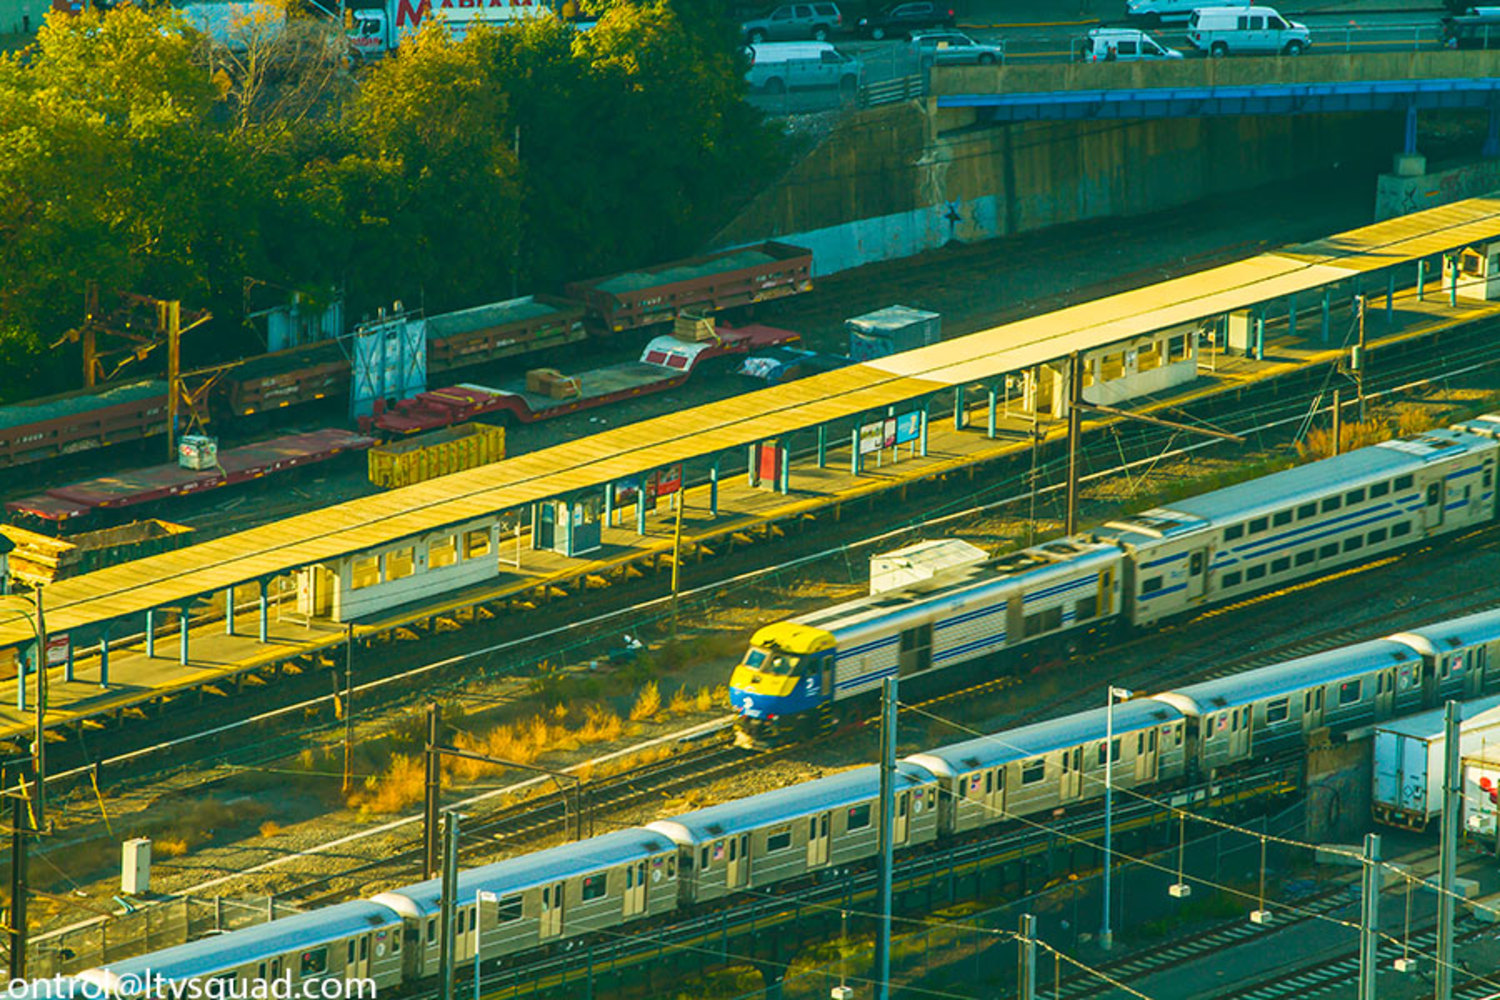 LIRR & The 7 Train passing Hunterspoint Avenue LIRR stop. Also them stored M3 cars at Arch street